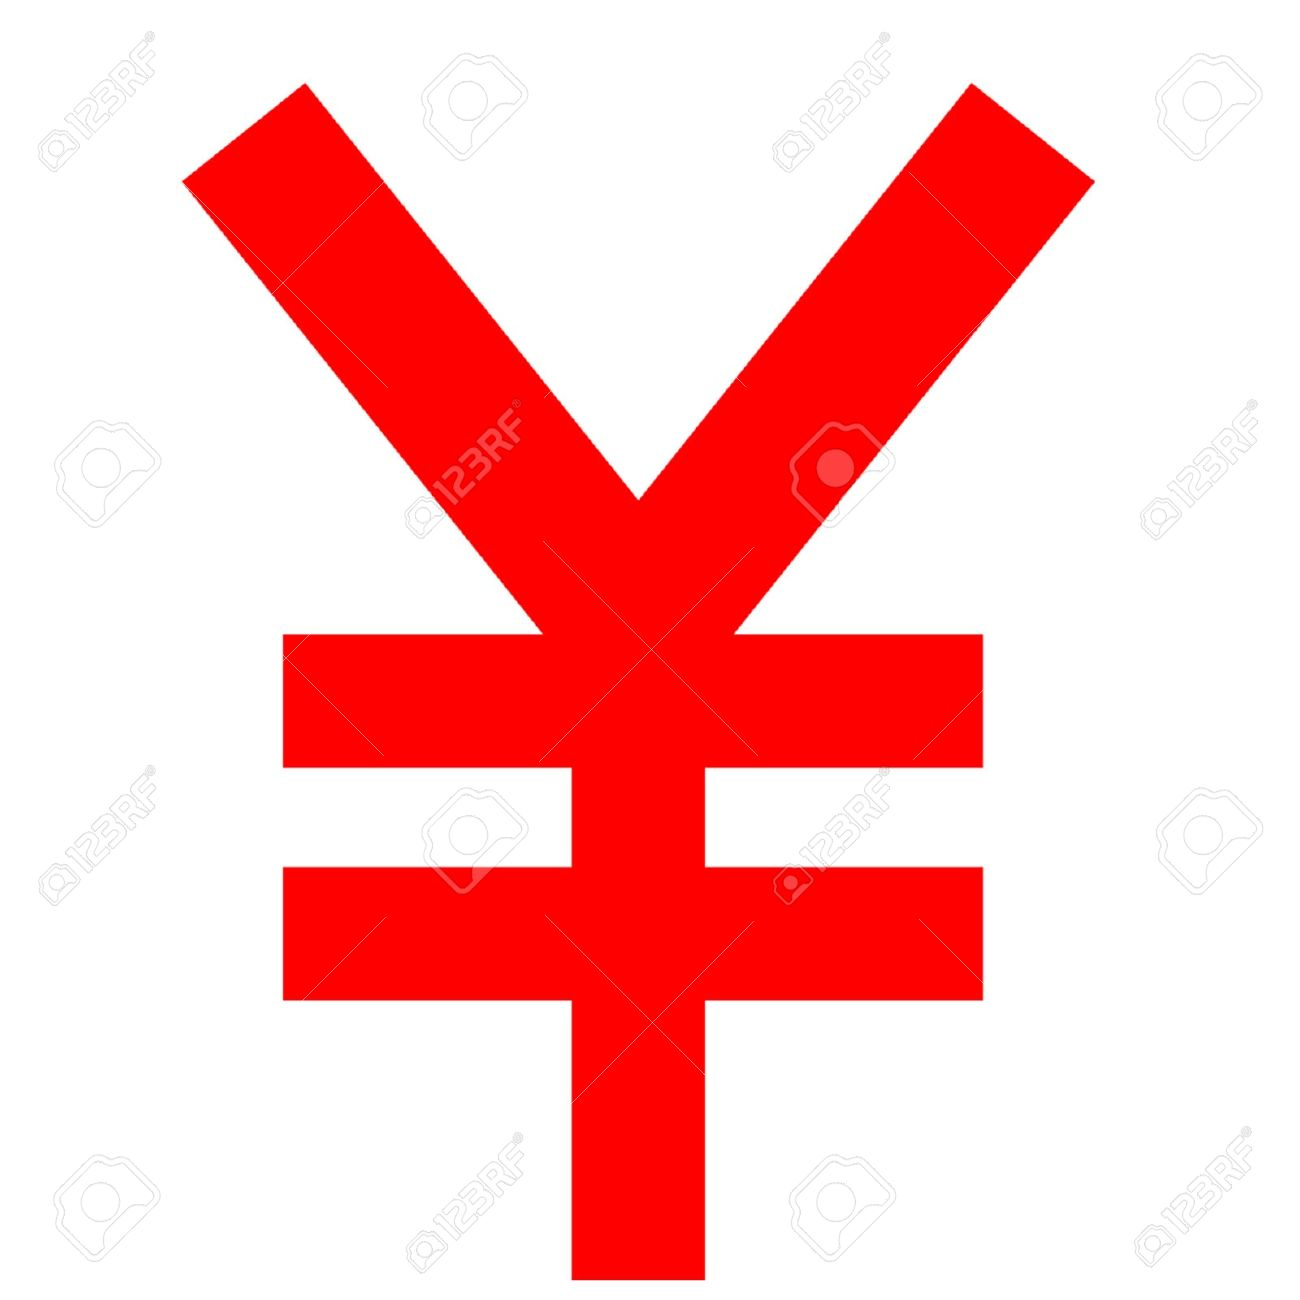 Symbol representing the japanese yen or the chinese renminbi symbol representing the japanese yen or the chinese renminbi stock vector 17433007 biocorpaavc Choice Image